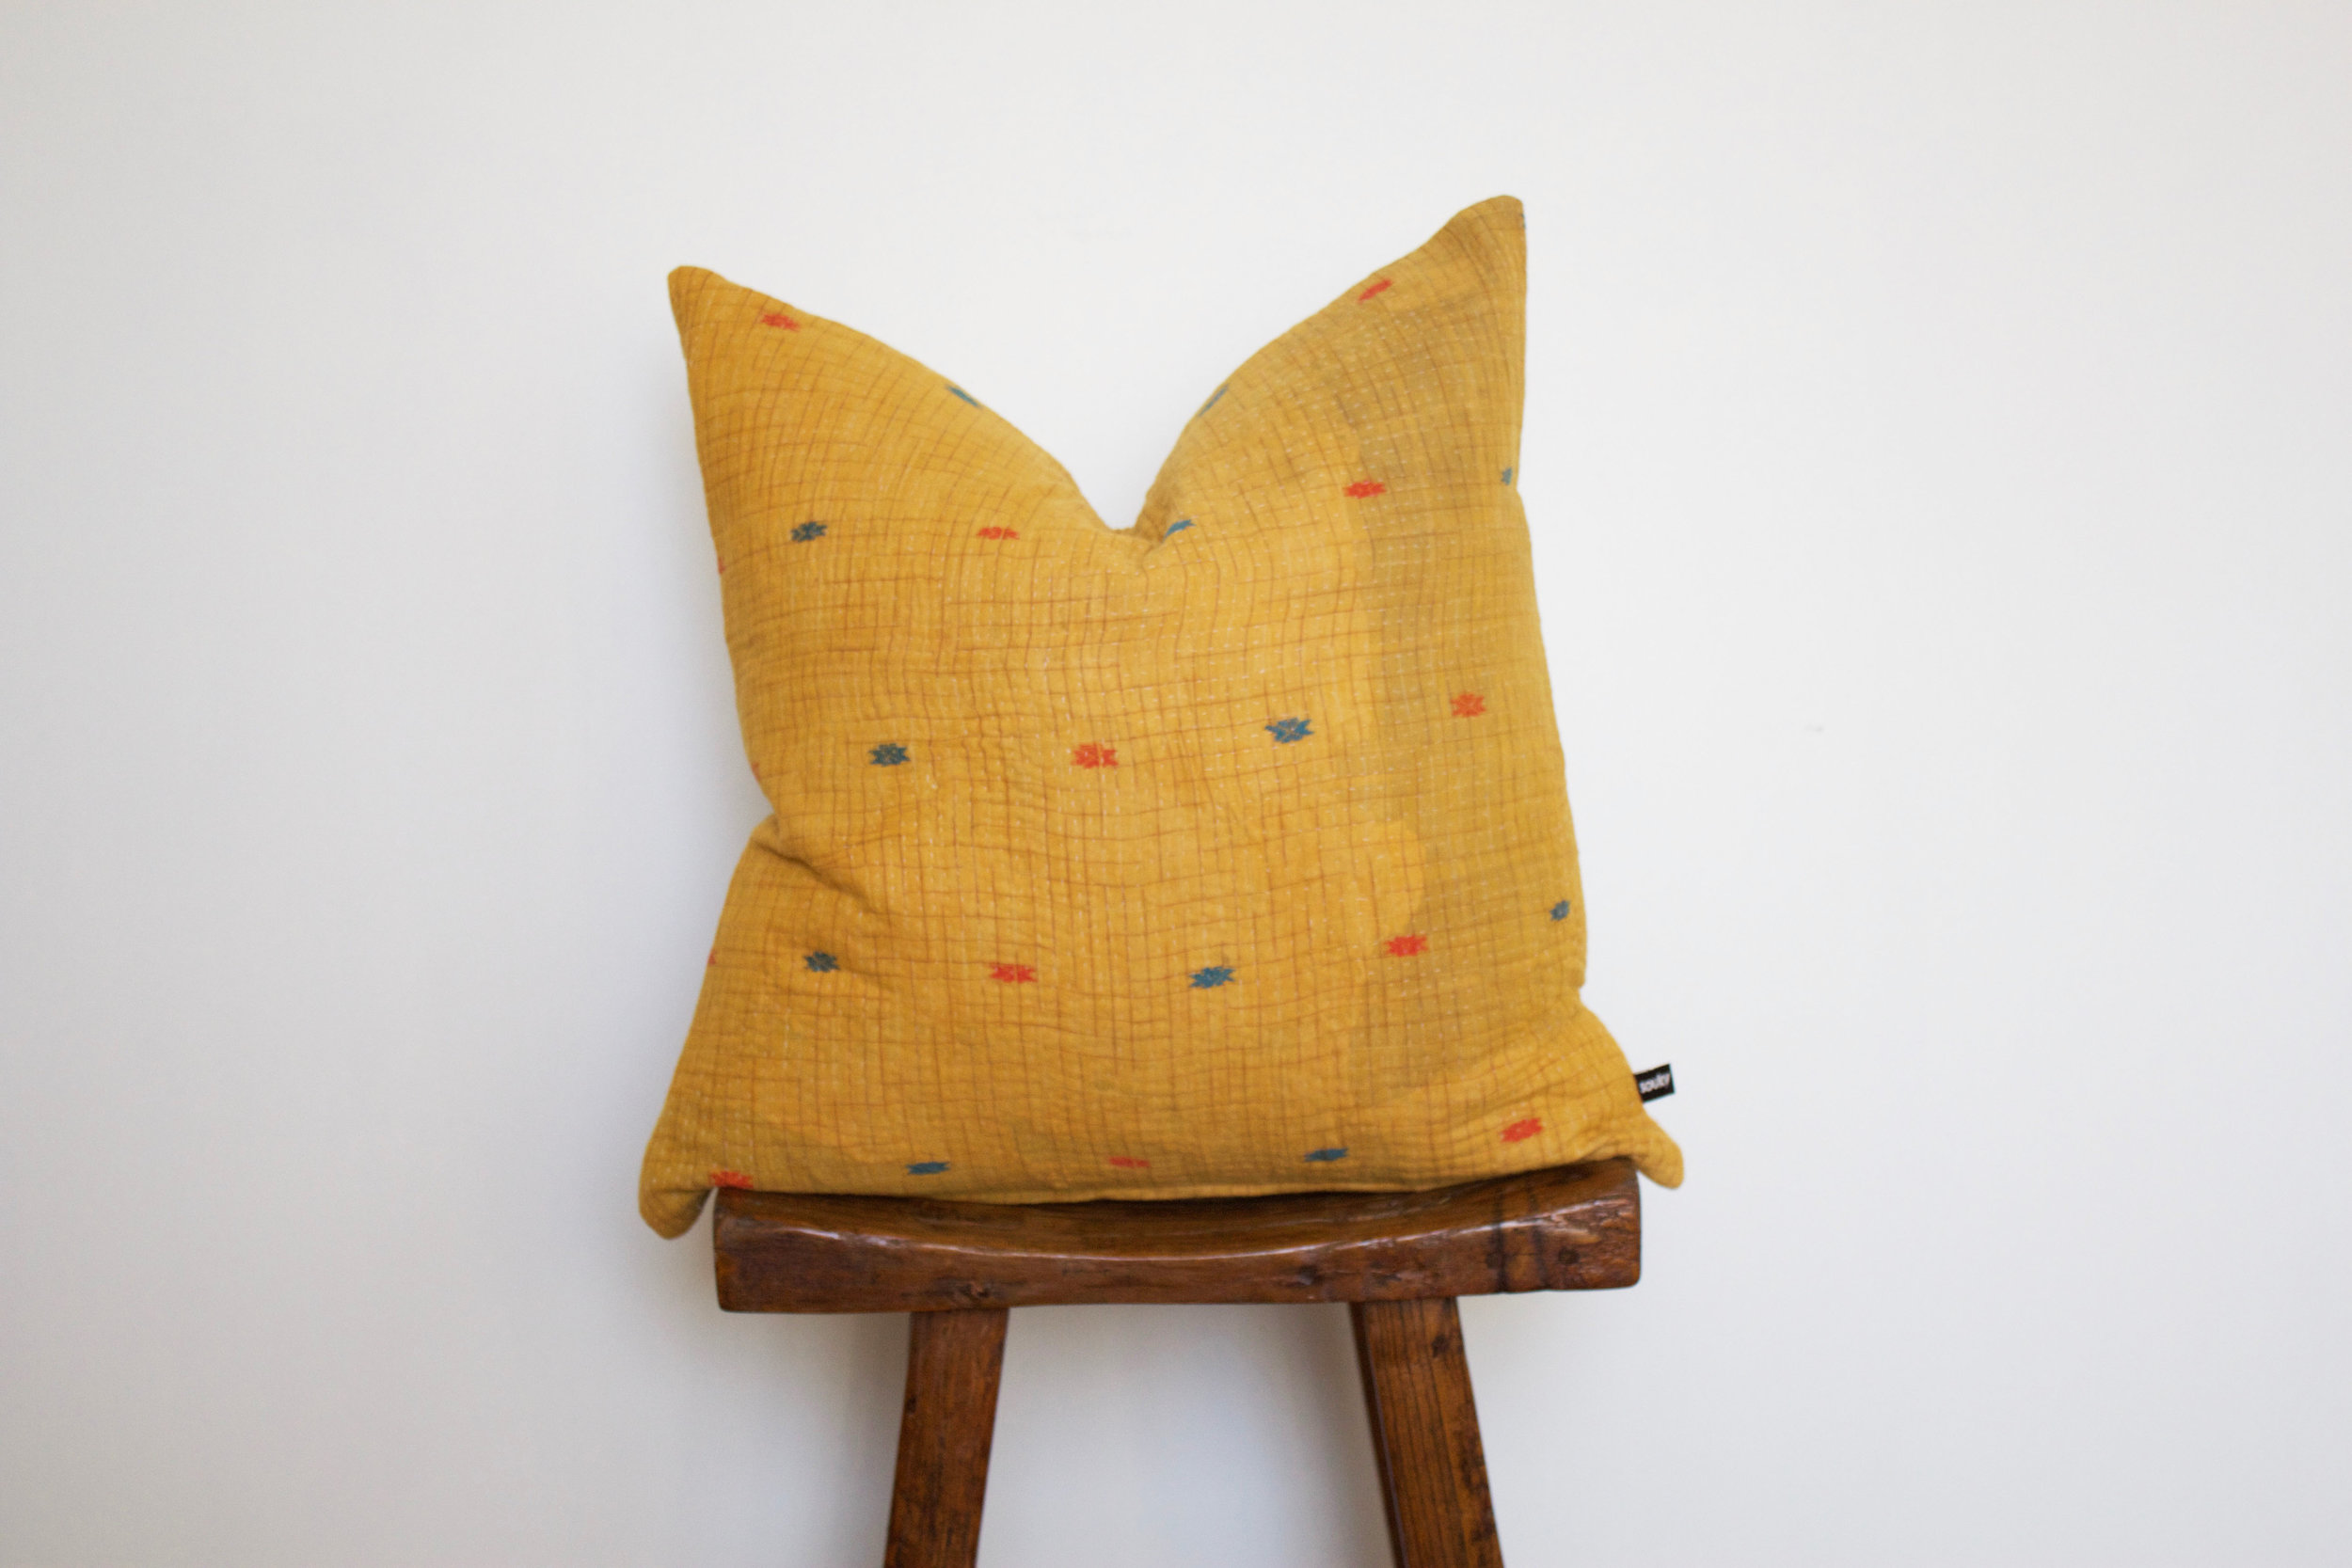 Mila - No. 214   300 RMB  Pillow cover is made from worn sari fabric sourced from India  Size: Roughly 50x50 cm  Pillow back is made from a neutral cotton/linen blend  Zipper on bottom of pillow  Down insert included  Dry clean only